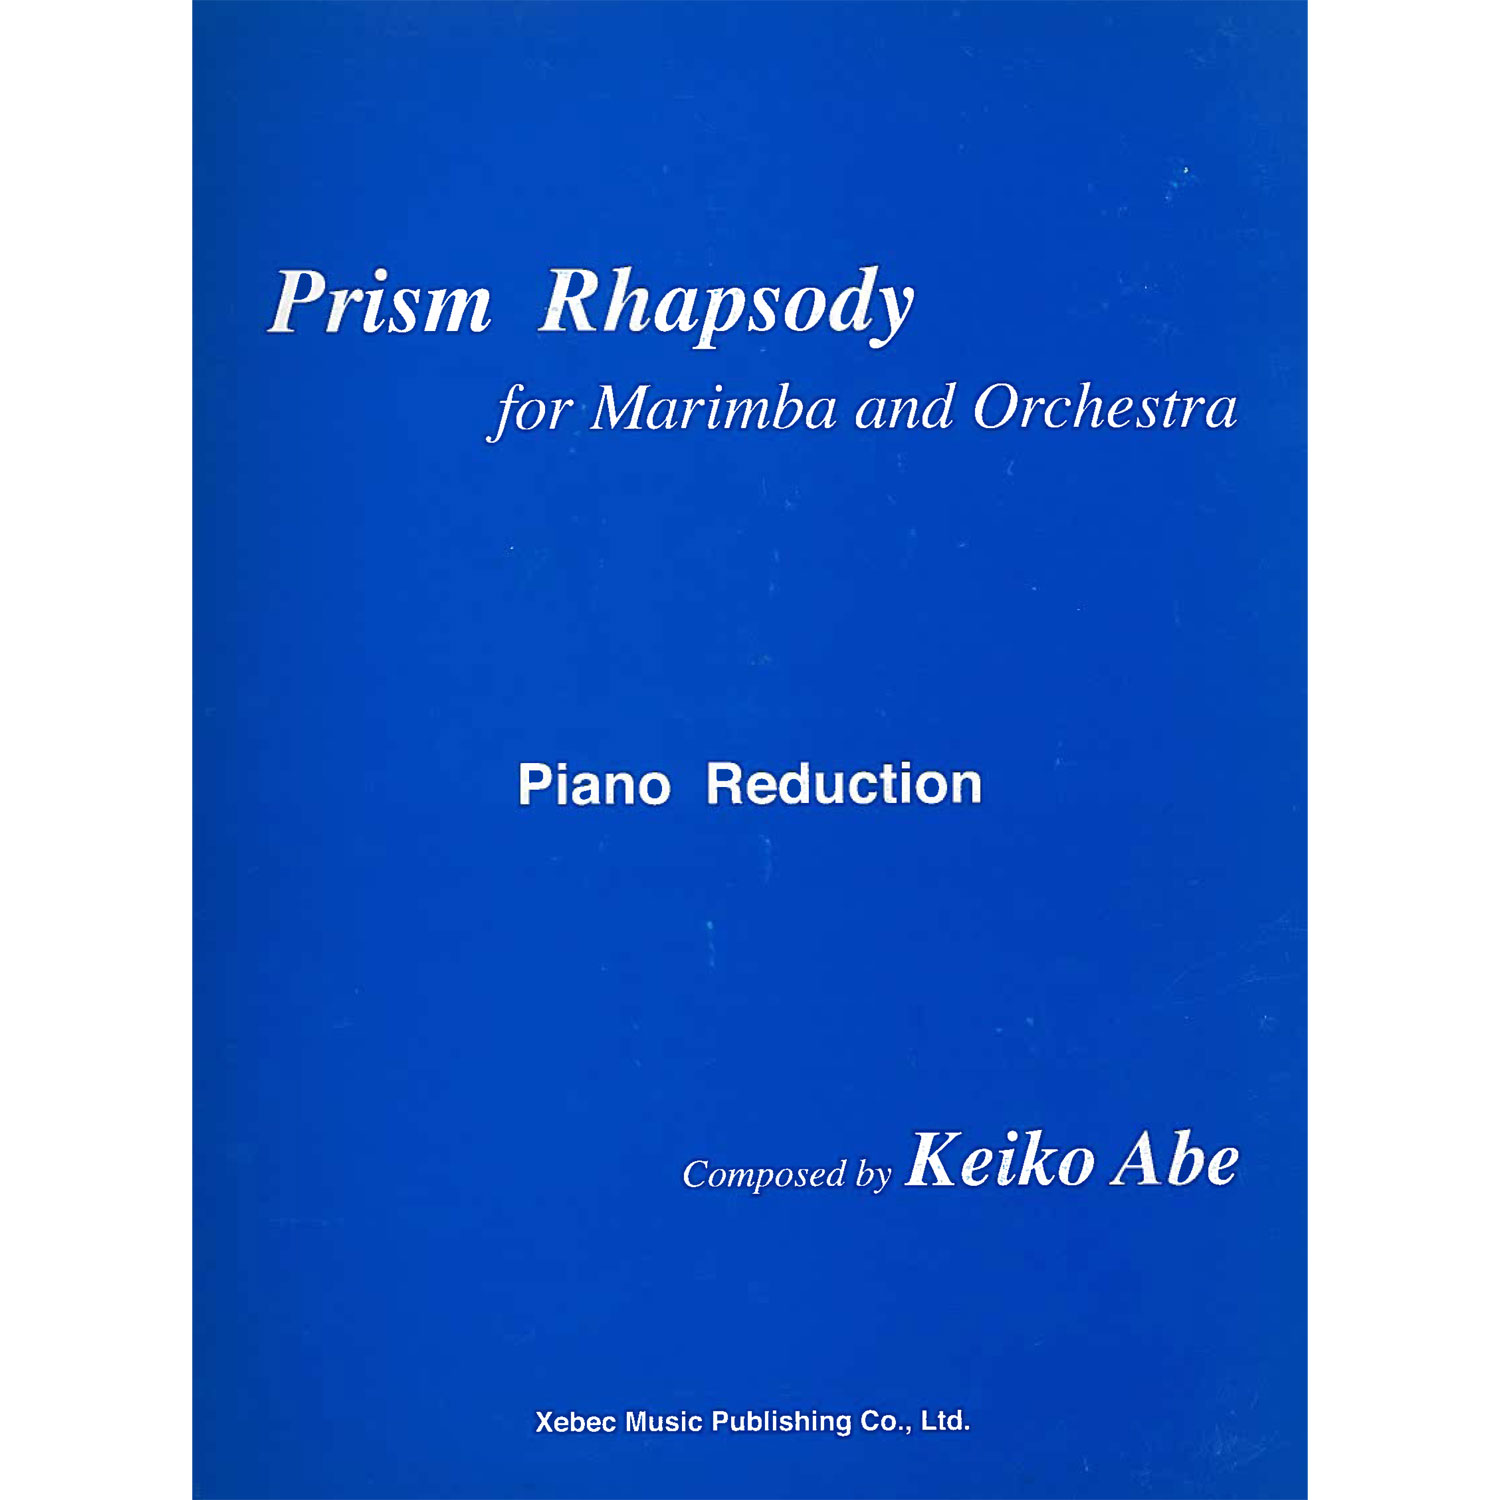 Prism Rhapsody (with Piano Reduction) by Keiko Abe